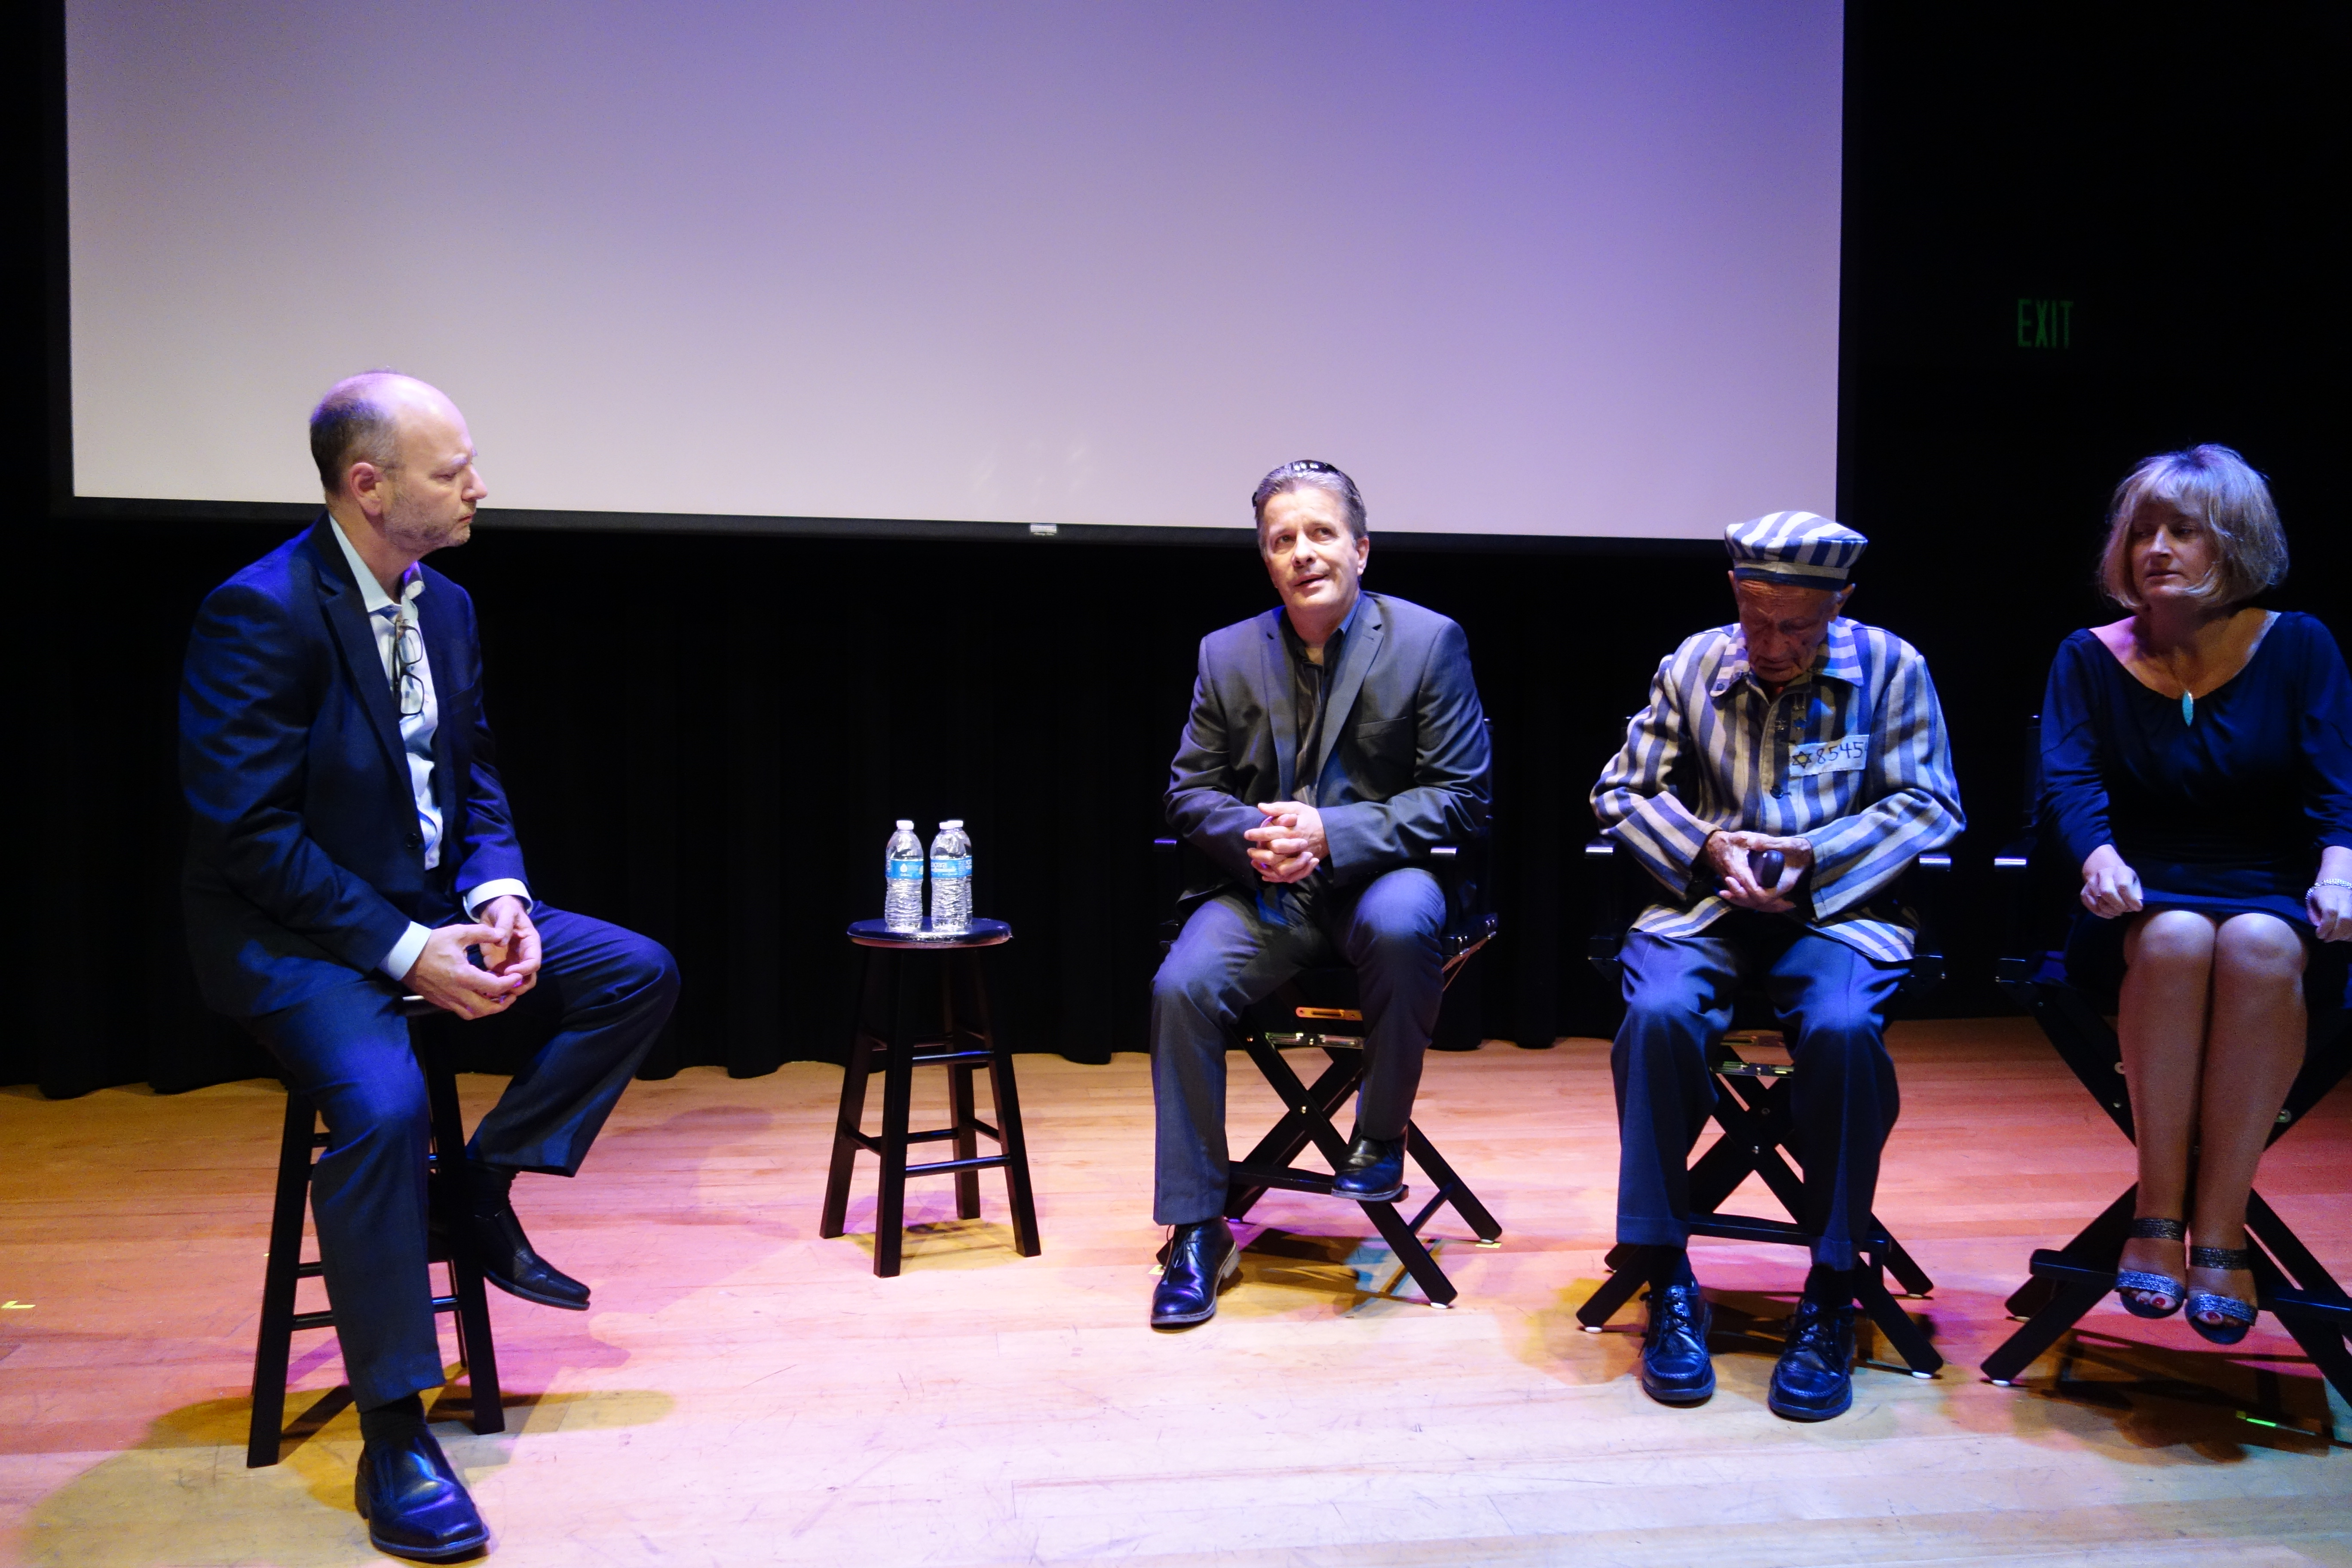 Stephen Smith, Llion Roberts, Ed Mosberg and Claire Ferguson at the USC screening